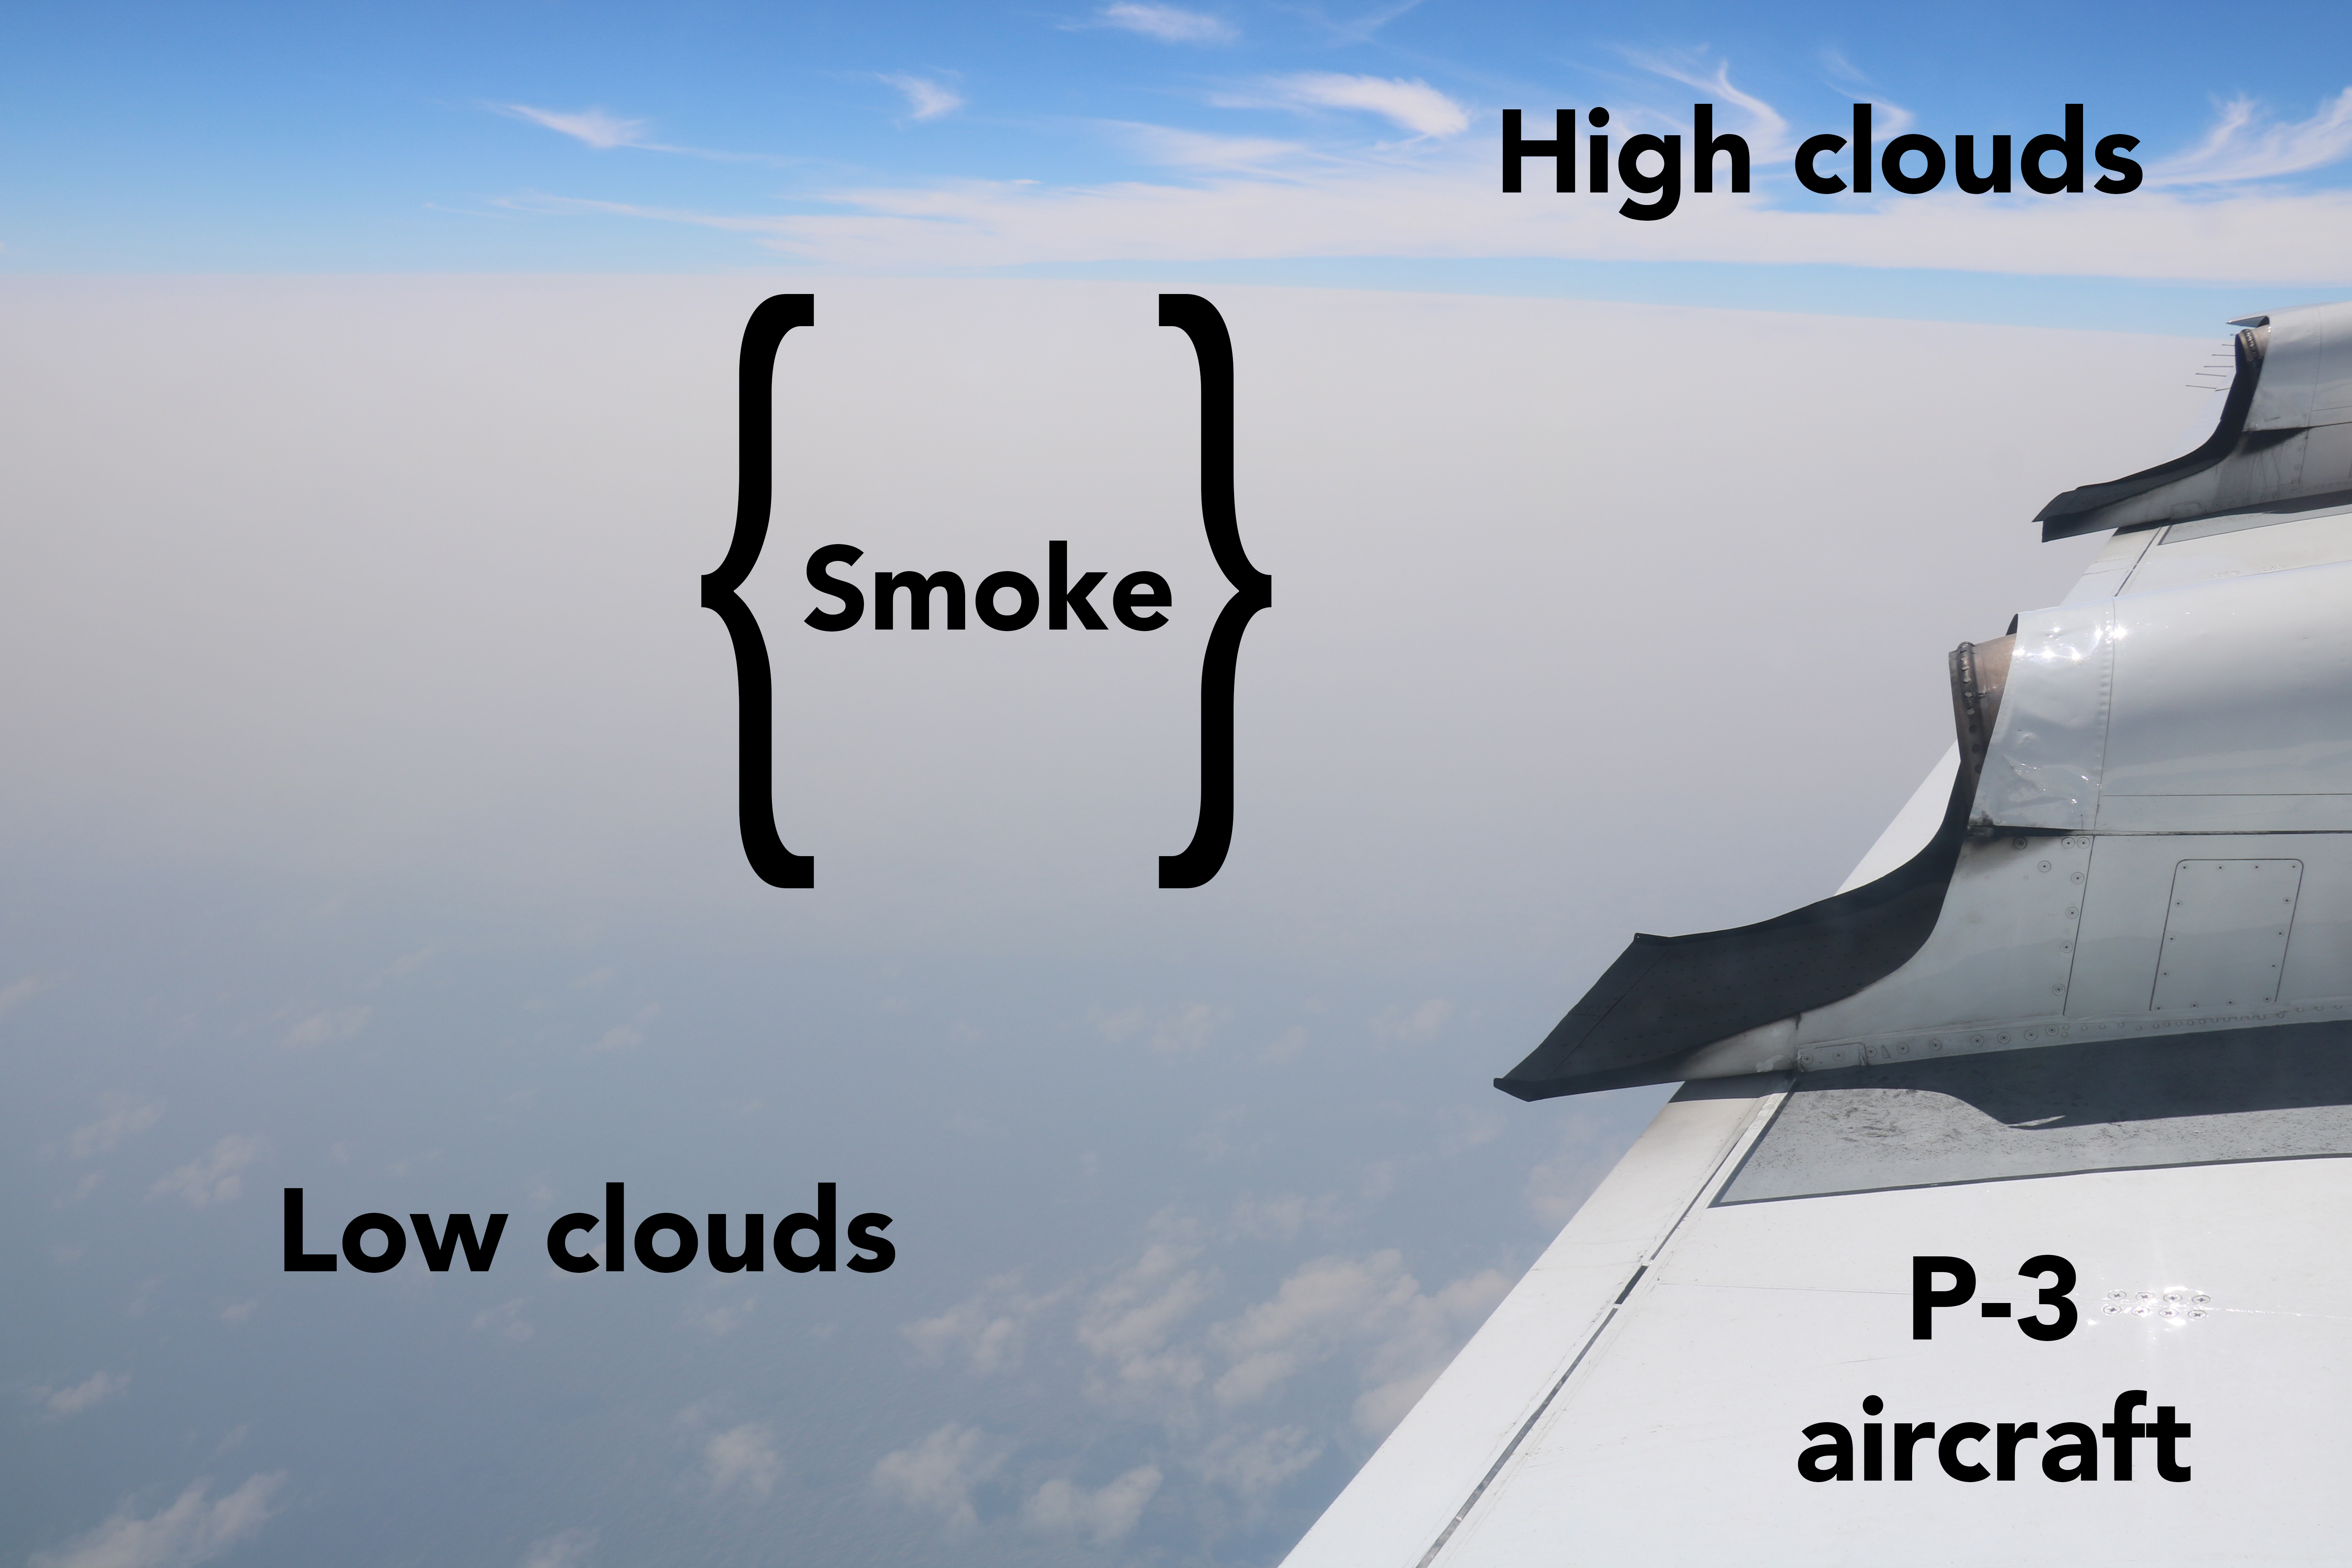 A thick haze of milky-gray smoke overlies a blue ocean surface dotted with puffy white low clouds